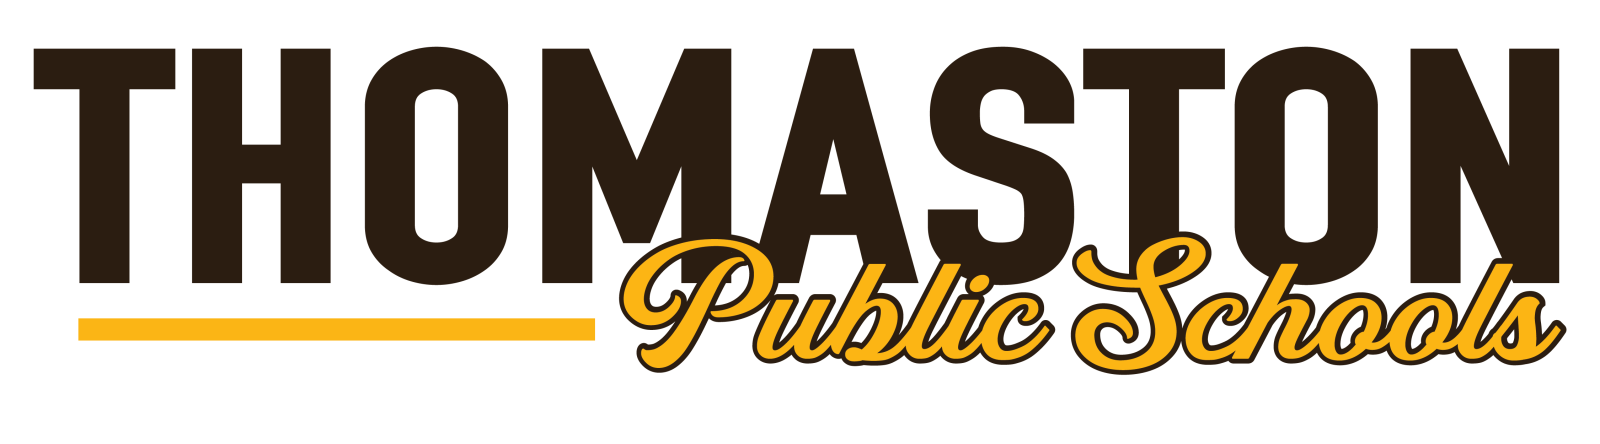 Thomaston Public Schools Logo